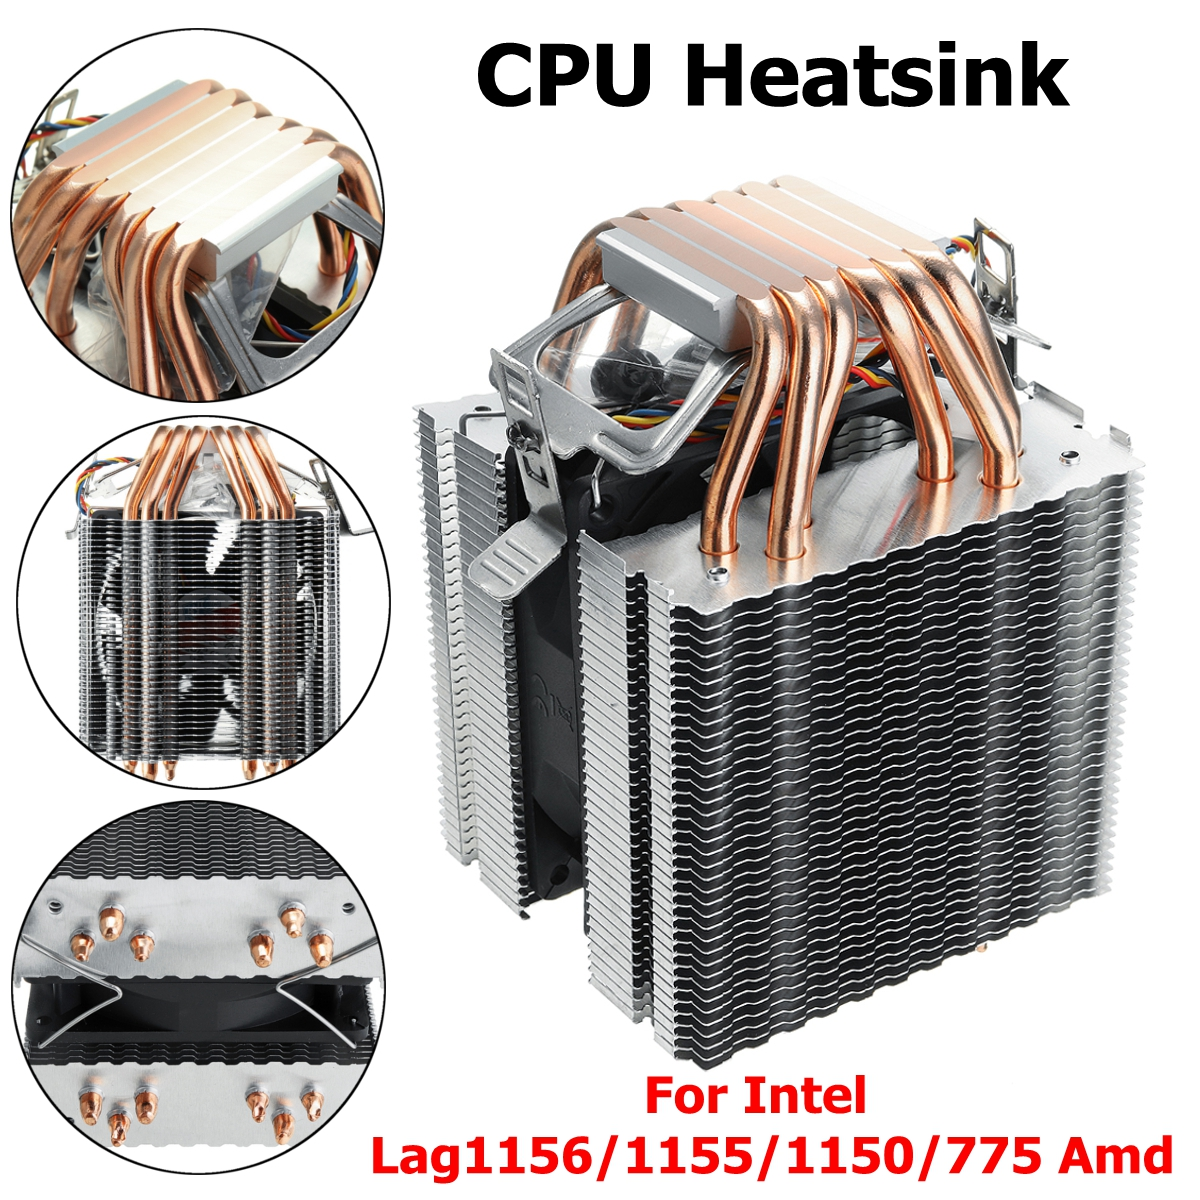 90mm tubo de calor 6 heatpipe desktop computador cpu cooler fan suporte ultra silencioso dissipador calor para intel 1156/1155/1150/775